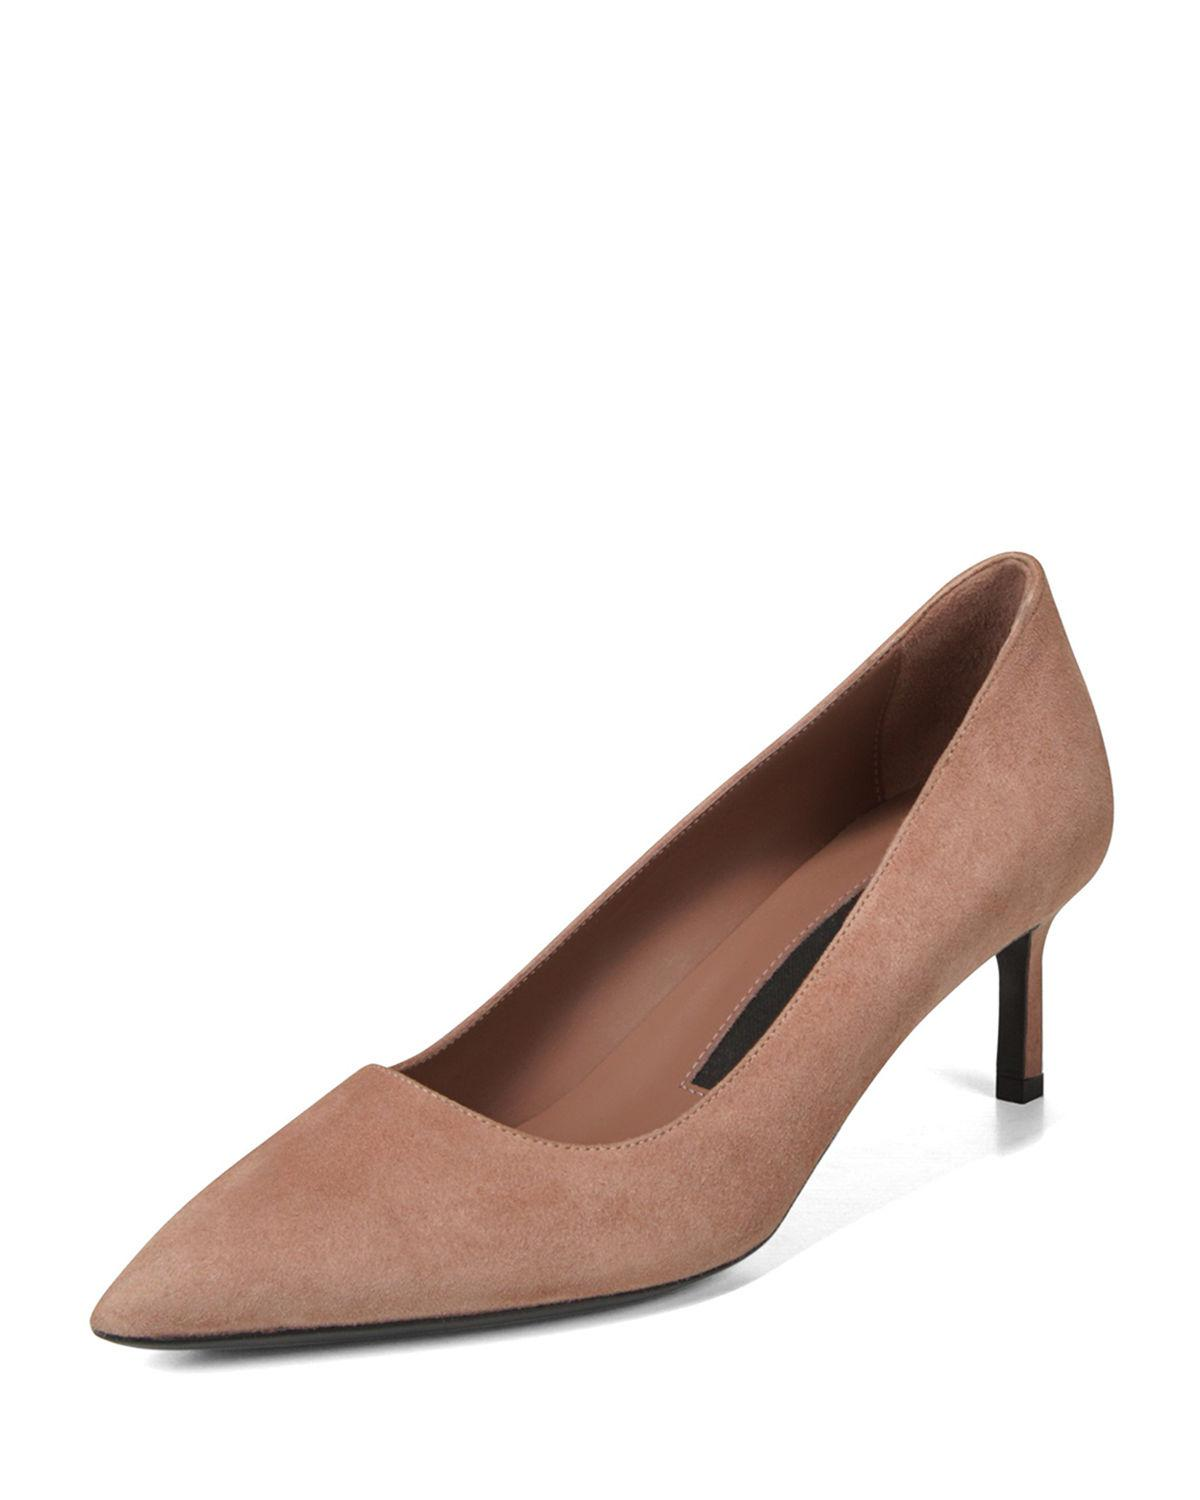 93fd8978c3 Lyst - Via Spiga Women's Nikole 55 Kitten Heel Pumps in Brown - Save 34%